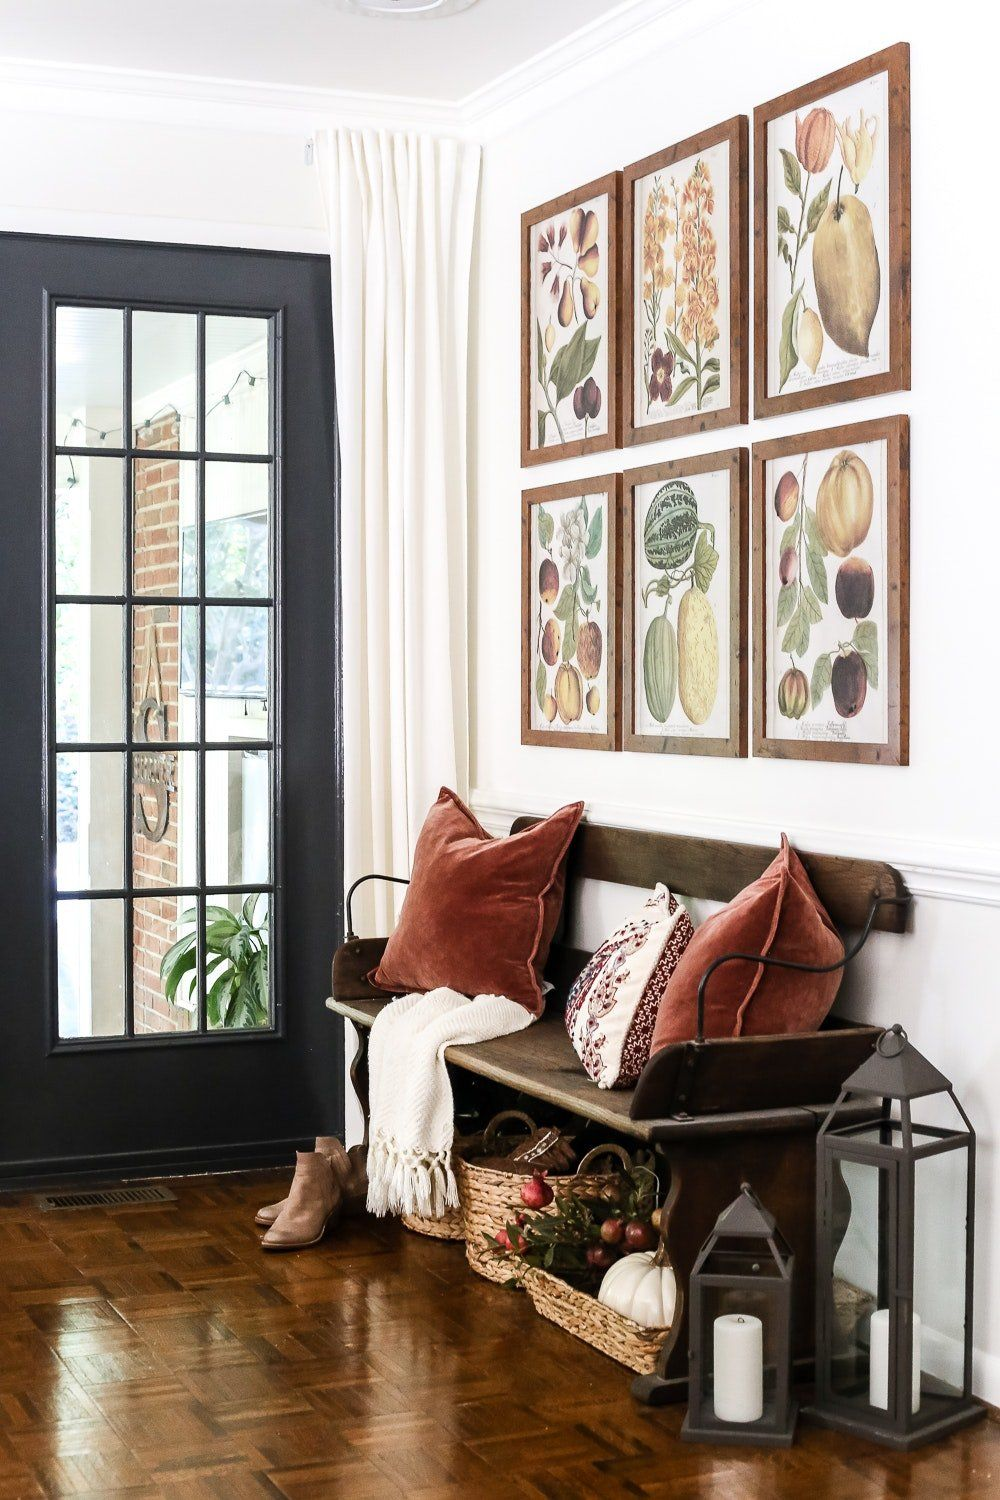 No Foyer Ideas : No porch ideas to decorate your entryway for fall instead